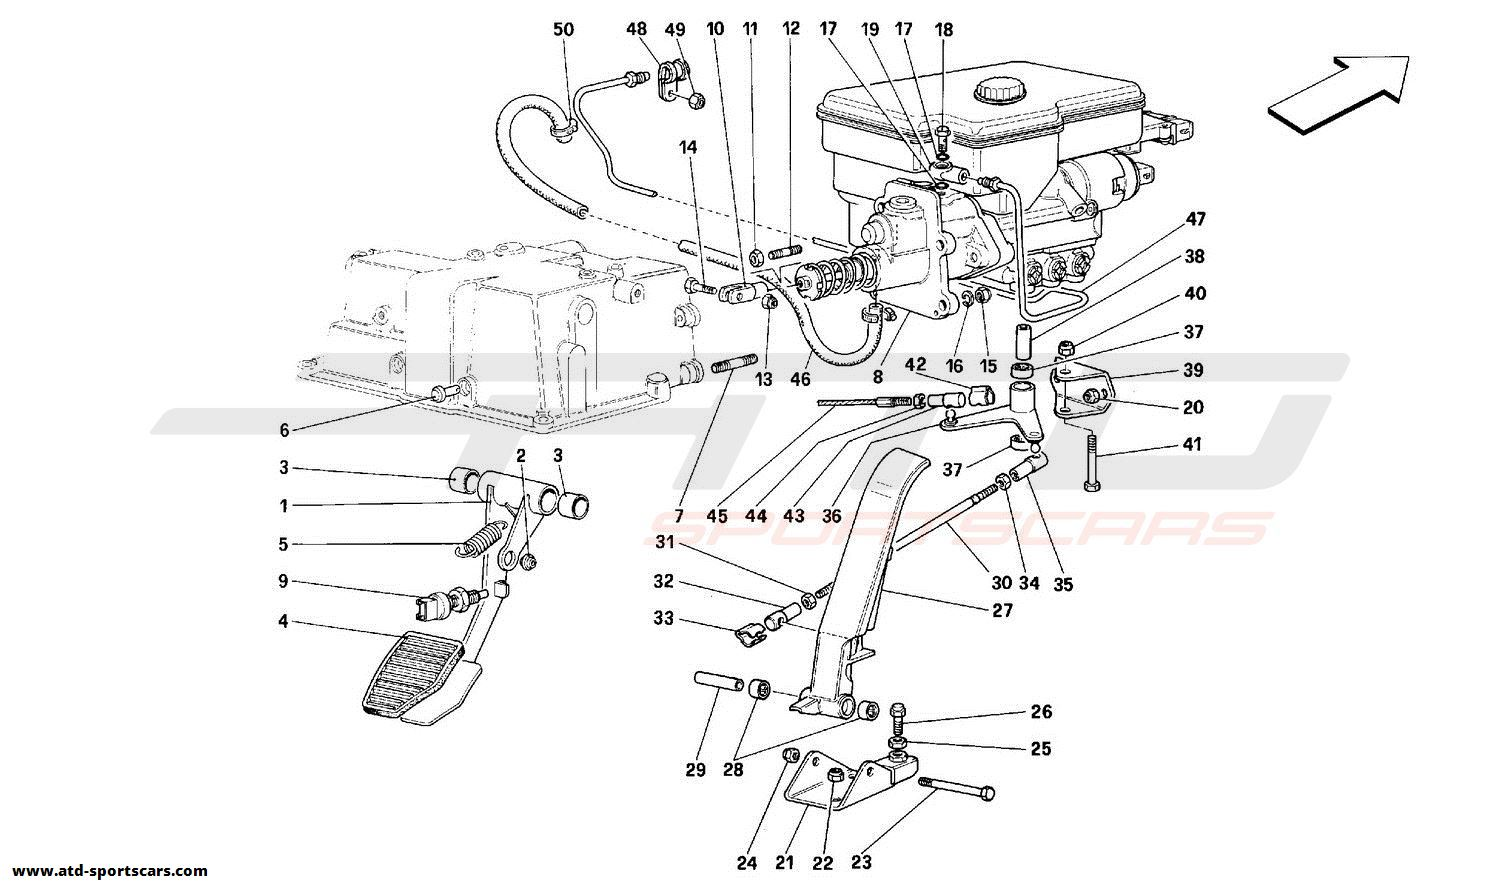 Ferrari 348 THROTTLE PEDAL AND BRAKE HYDRAULIC SYSTEM